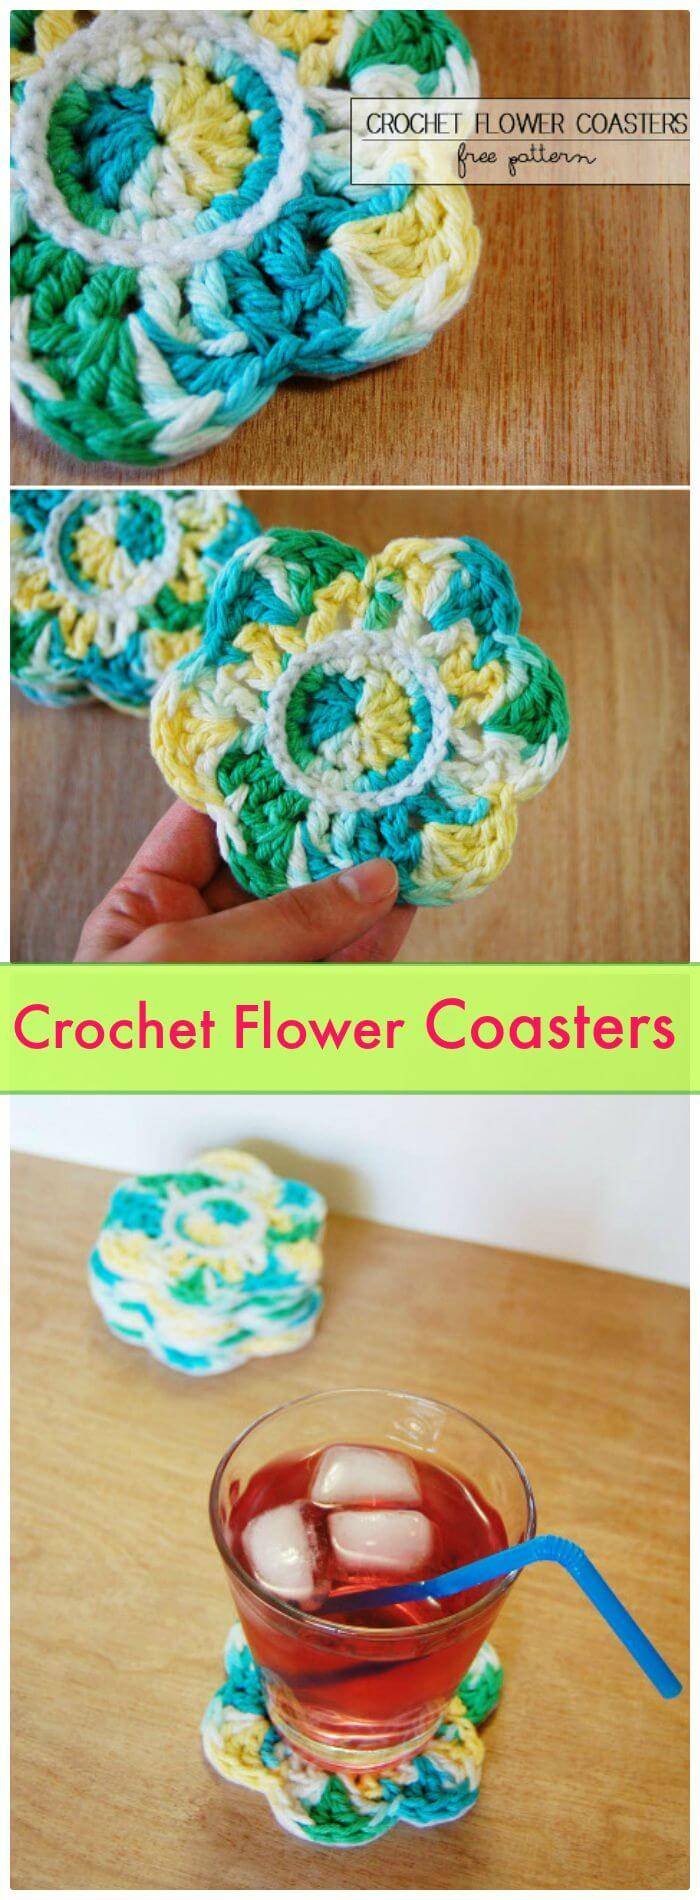 DIY Crochet Flower Coasters, Free crochet coaster patterns with easy tutorials! How to crochet a coaster for beginners!